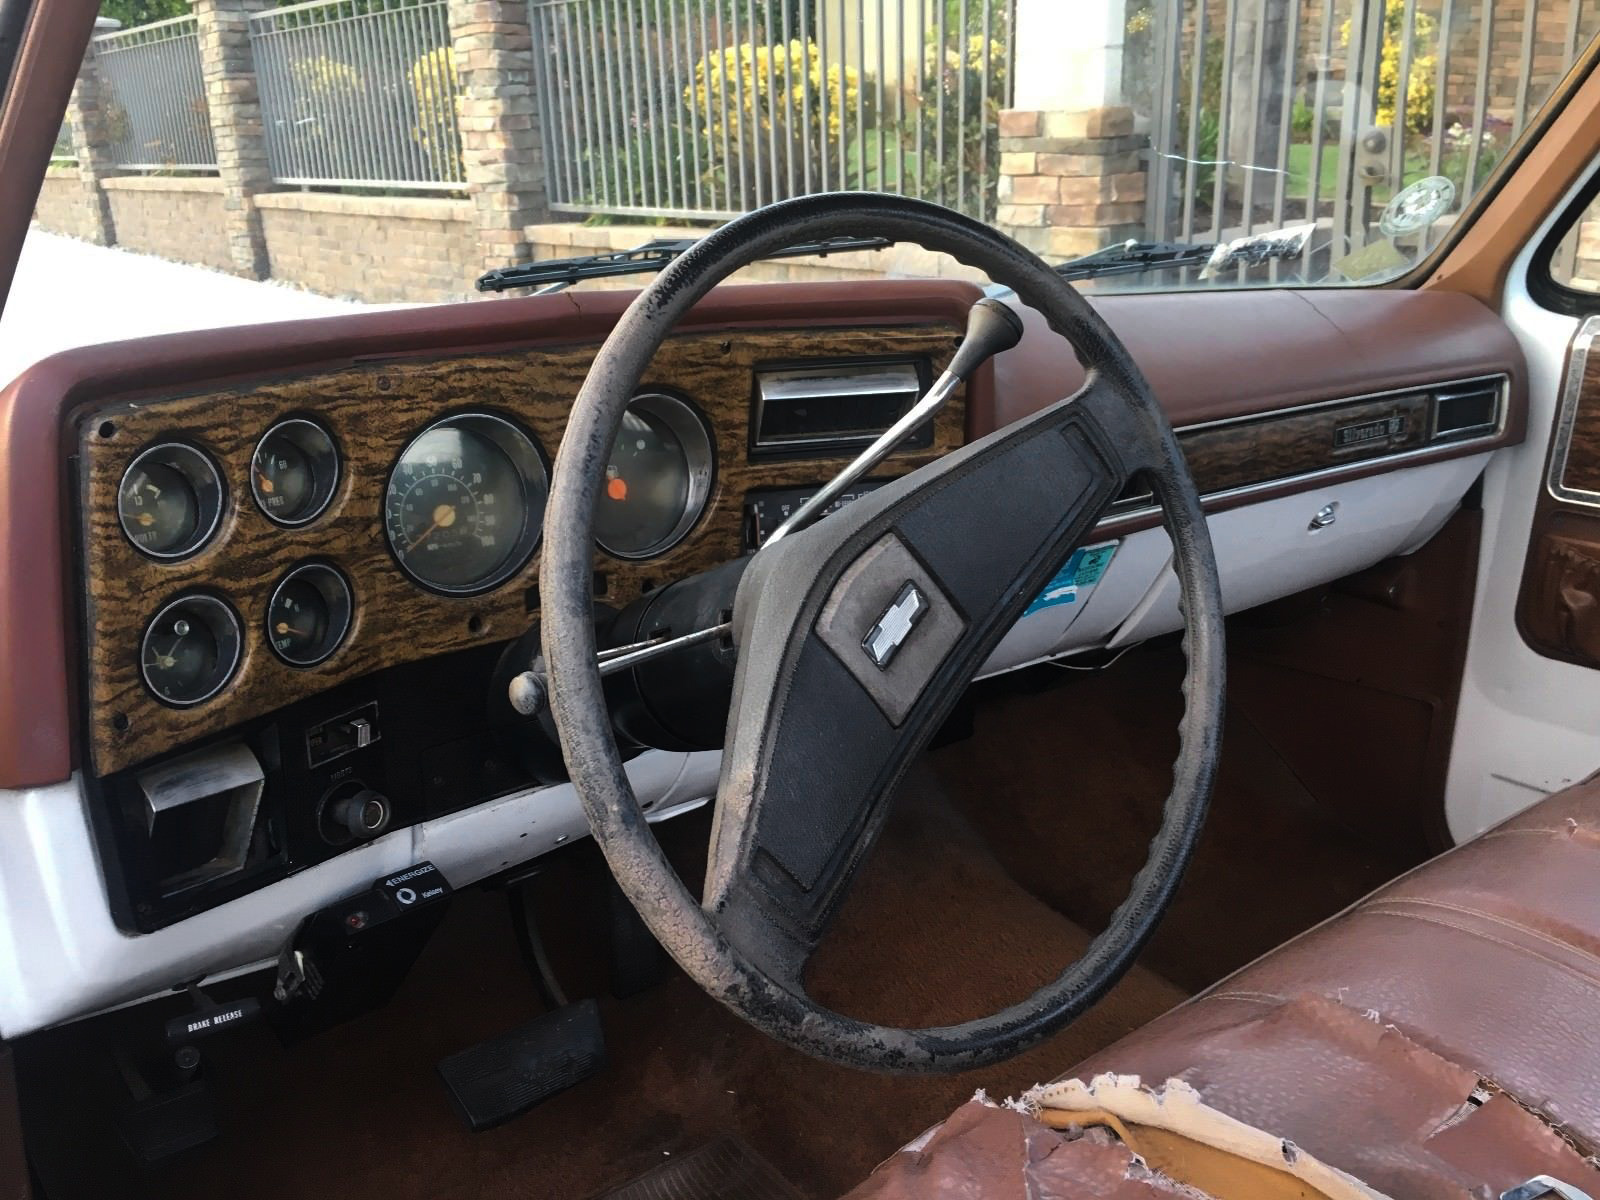 Original Owner 1976 Chevrolet C 10 Silverado Chevy Half Ton Pick Up The Interior Looks Like Its Had Share Of Sun Beating On It And Regular Wear Lots There Is A Lot Work To Do Inside This Cab Or Not